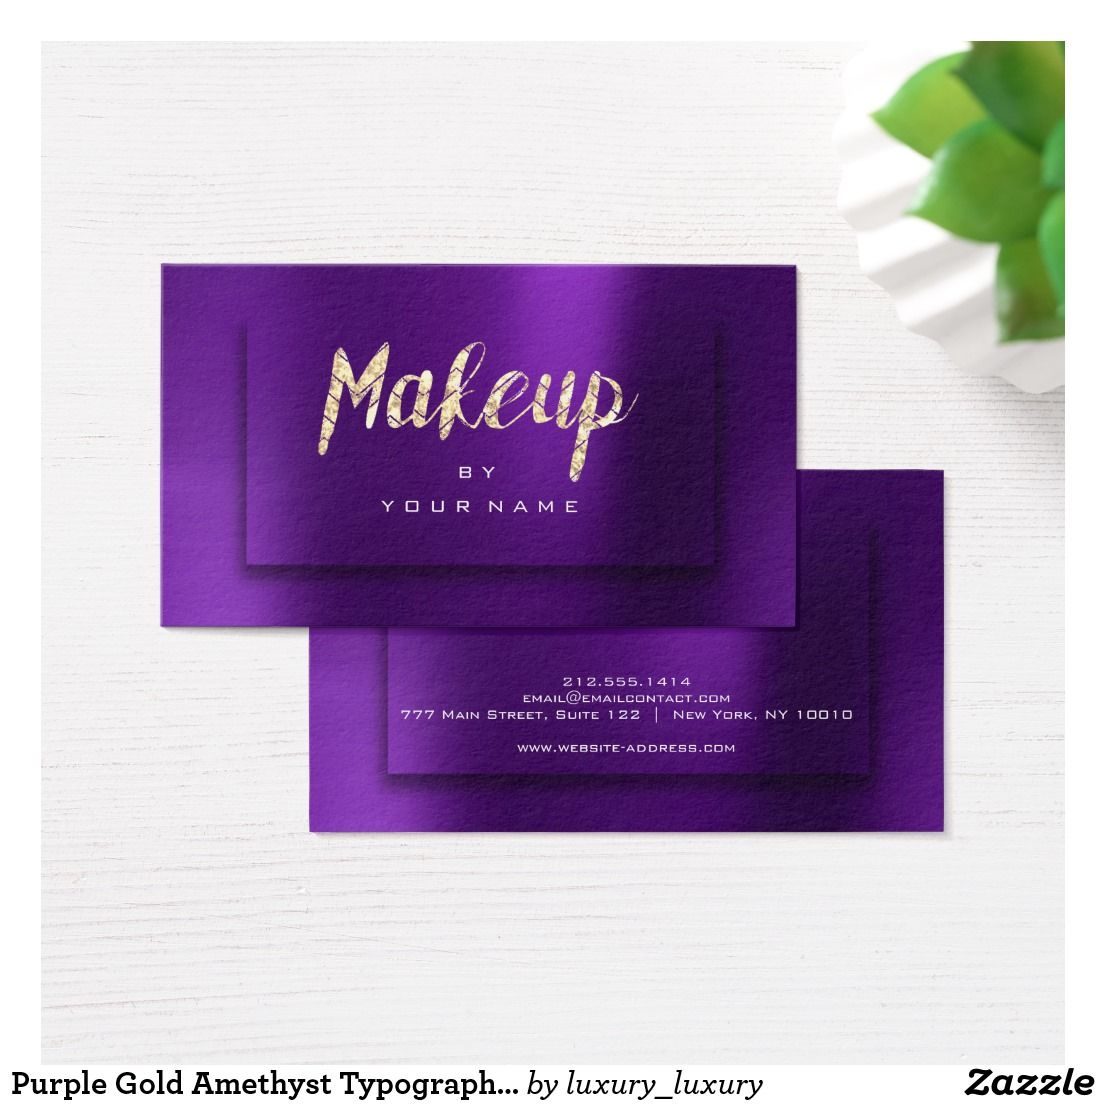 Purple Gold Amethyst Typograph Makeup Artist D Business Card - Place card maker